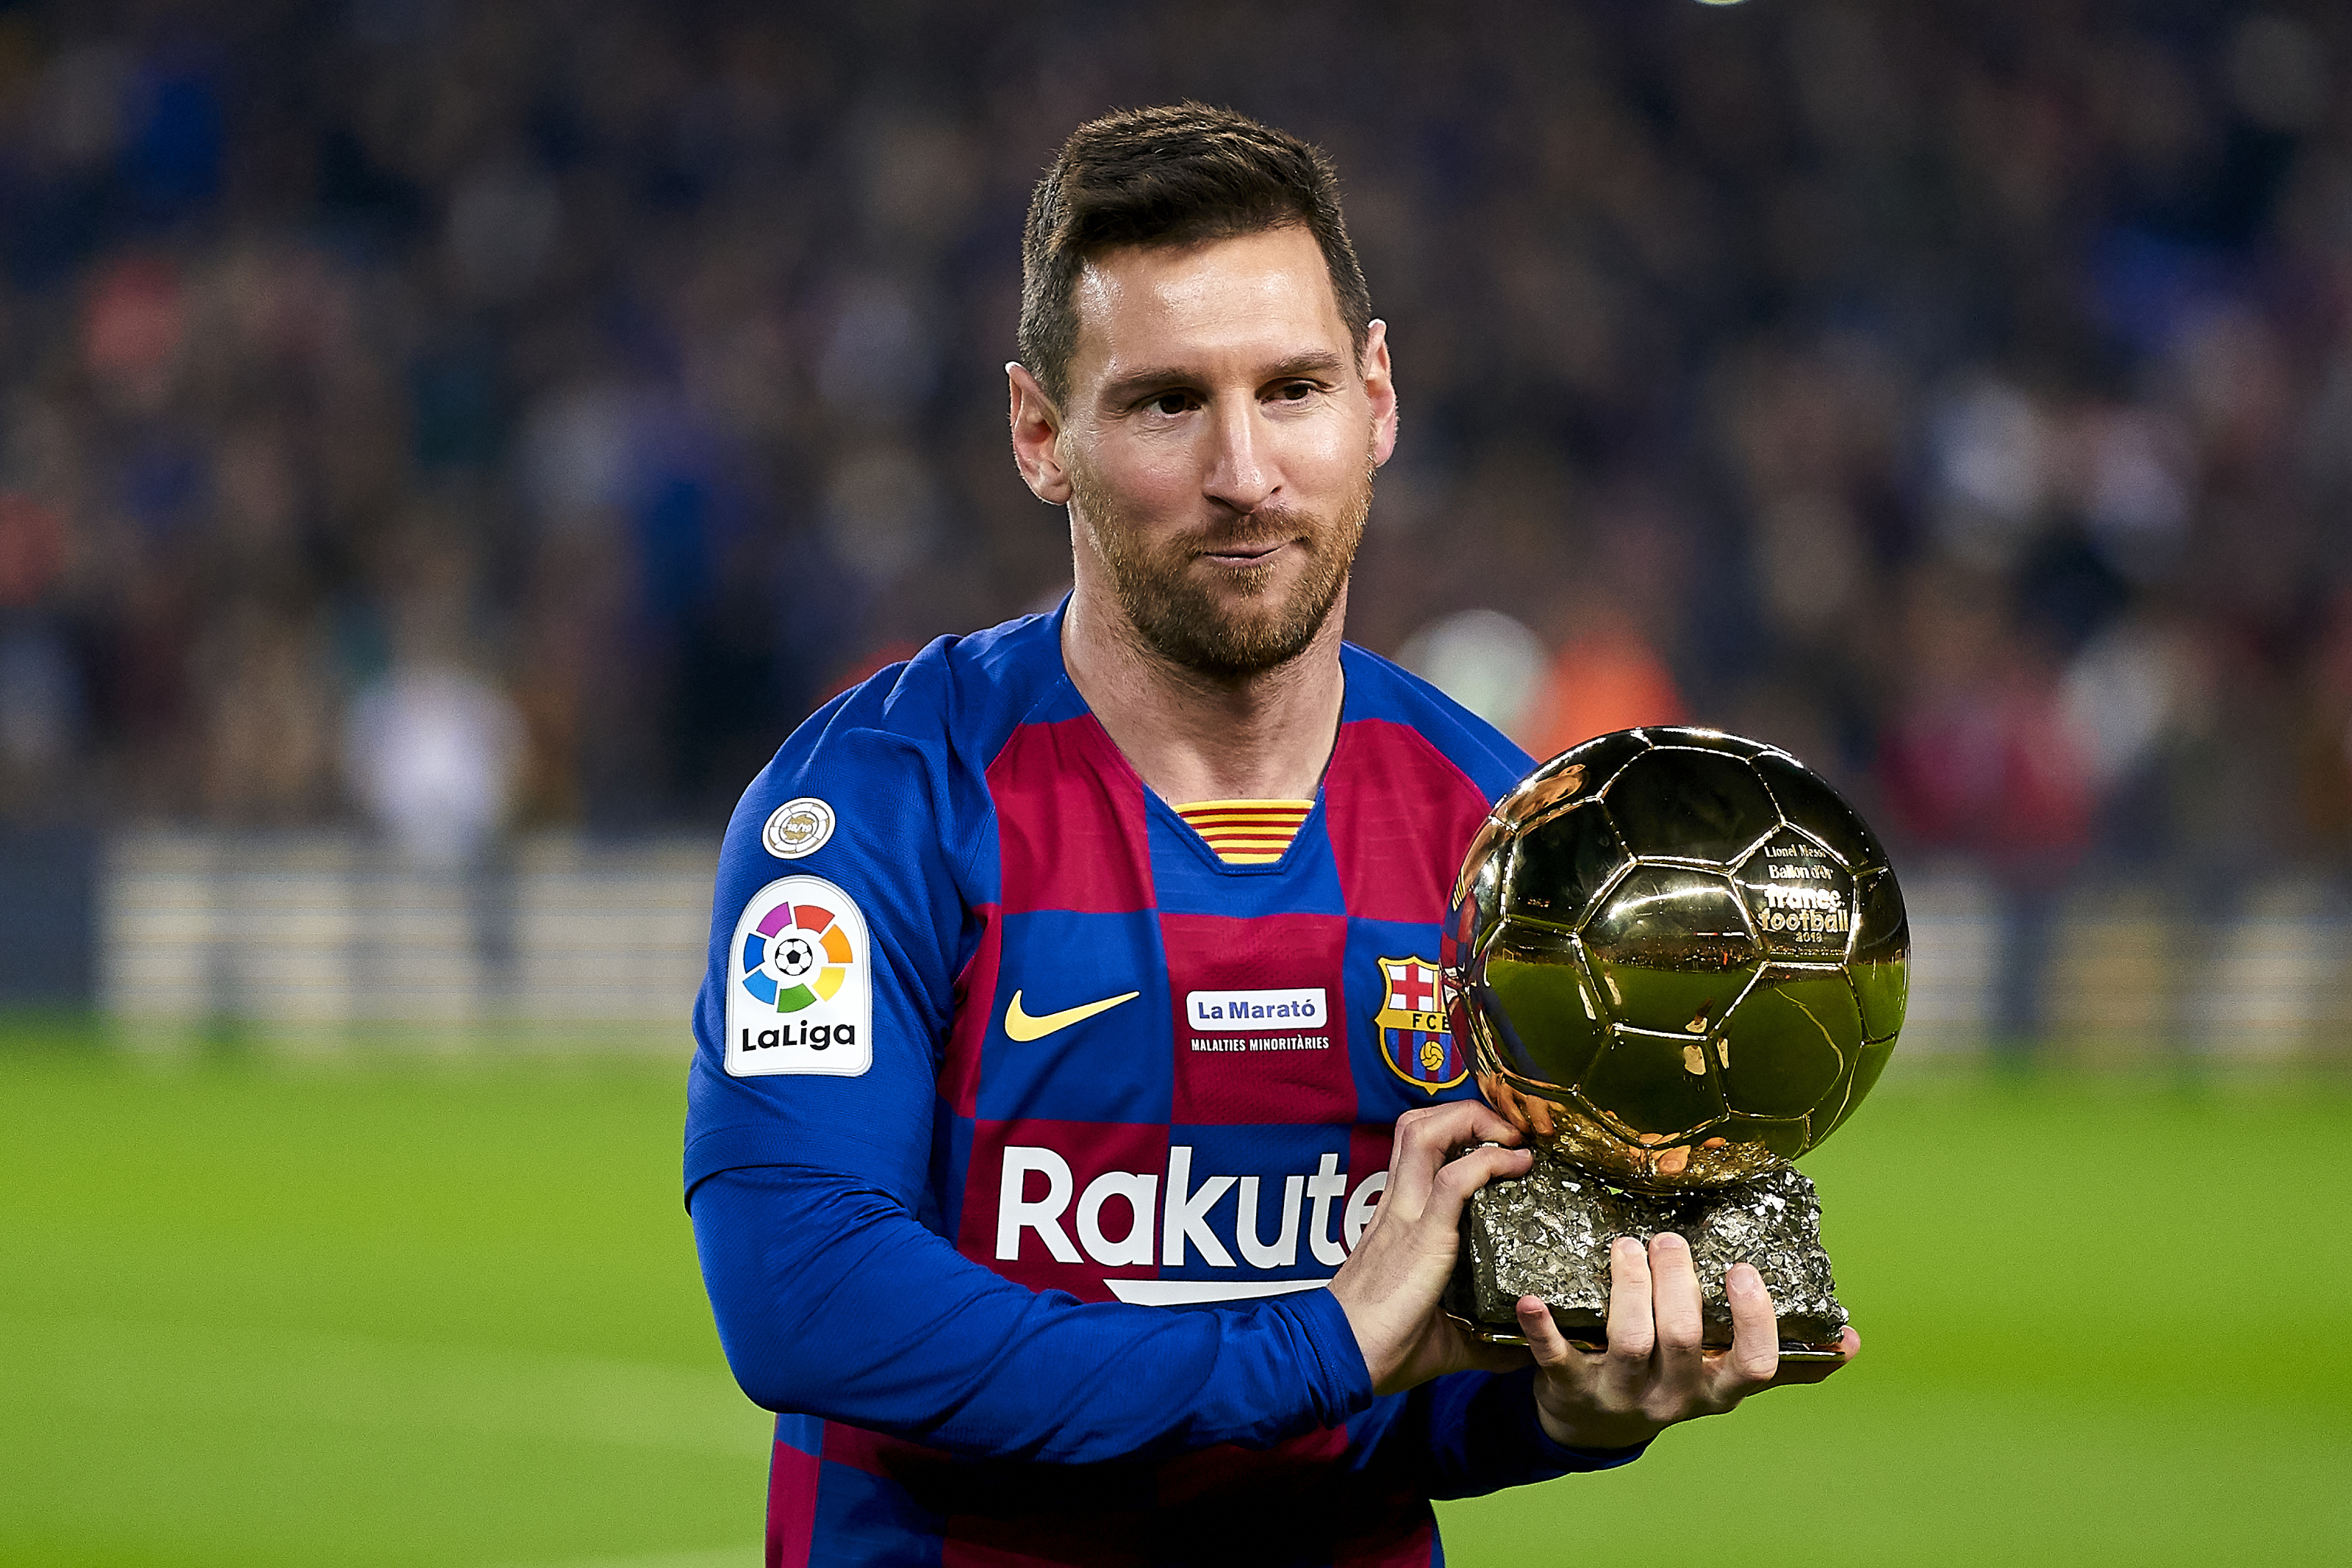 Lionel Messi, the legendary FC Barcelona Forward, has signed a 5-year contract to become the worldwide brand ambassador for Hard Rock.